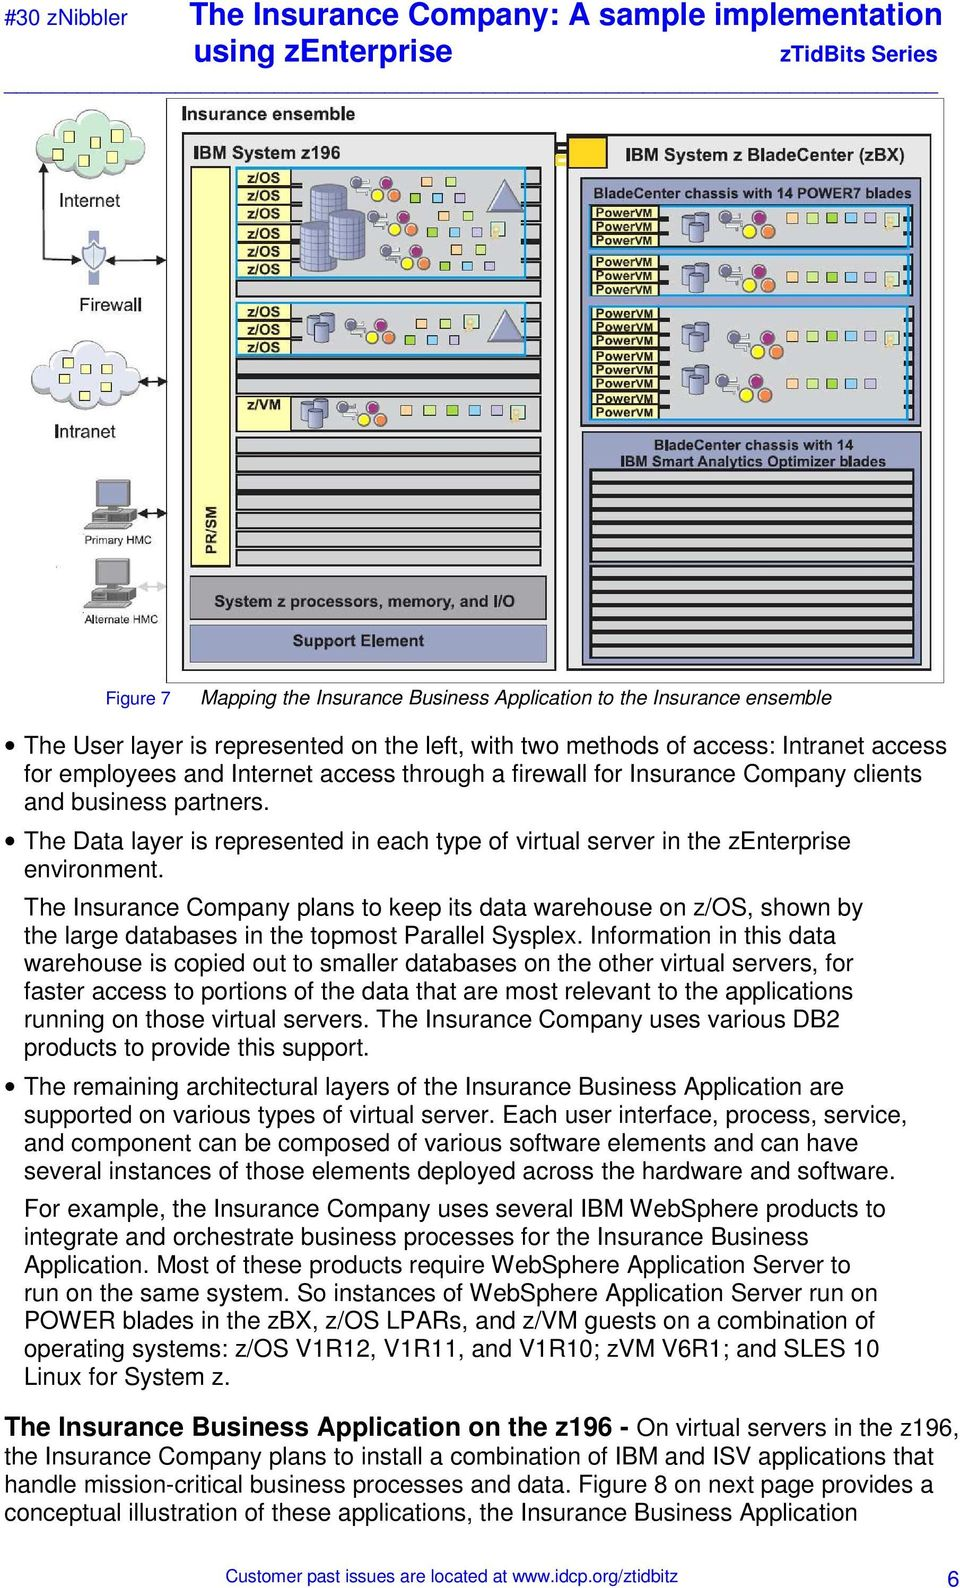 The Insurance Company plans to keep its data warehouse on z/os, shown by the large databases in the topmost Parallel Sysplex.